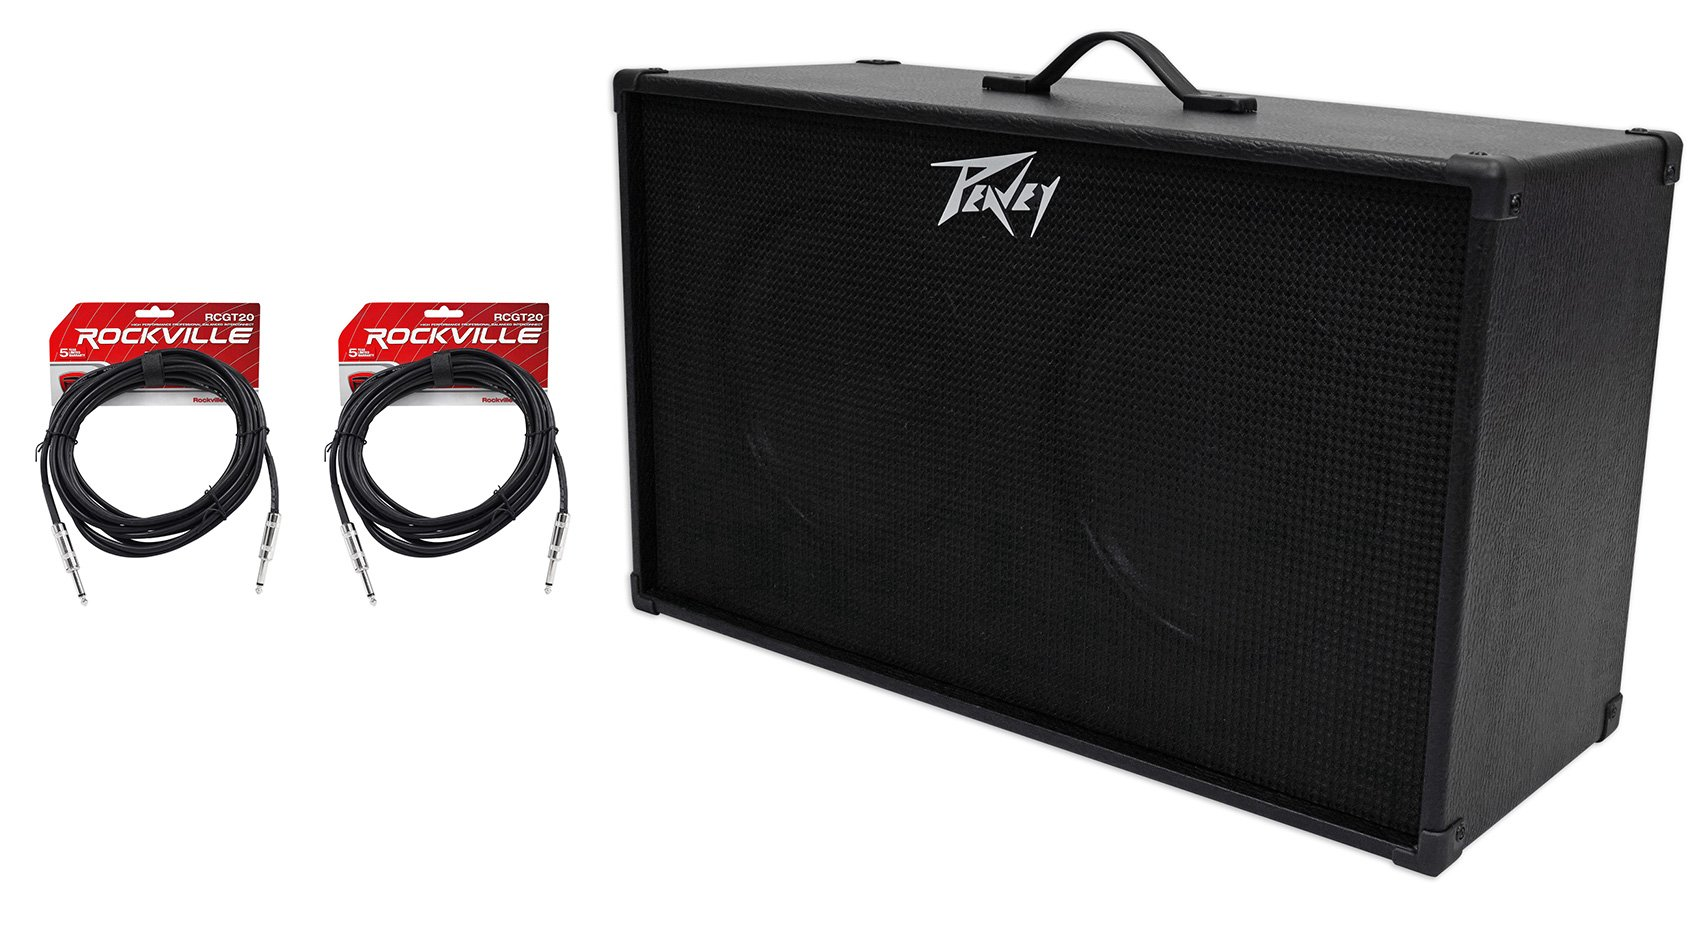 PEAVEY 212 2x12'' Speakers Guitar Amplifier Amp Extension Cabinet+2 Guitar Cables by Peavey